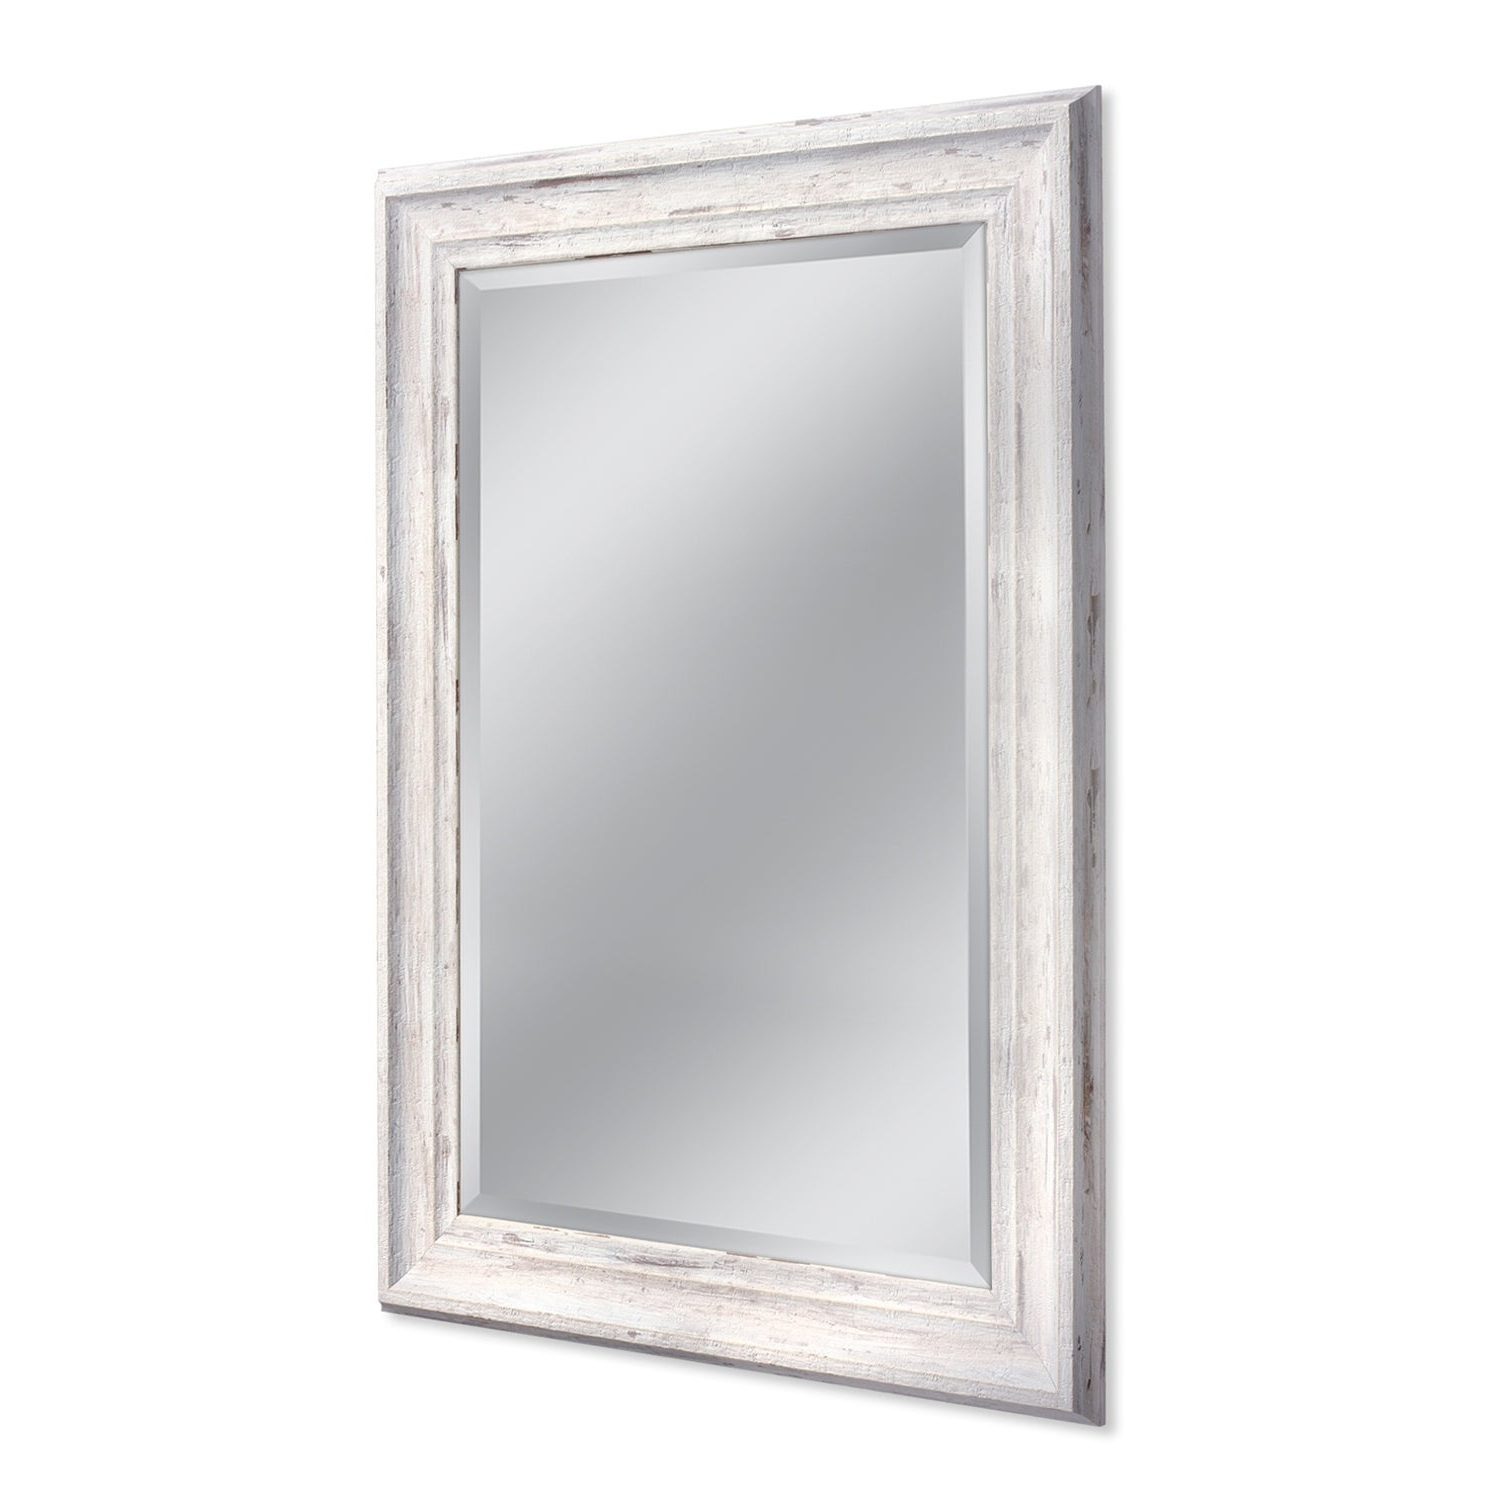 Headwest 31 X 43 Frarmhouse White Wall Mirror – 31 X 43 Inside Most Up To Date White Framed Wall Mirrors (View 18 of 20)